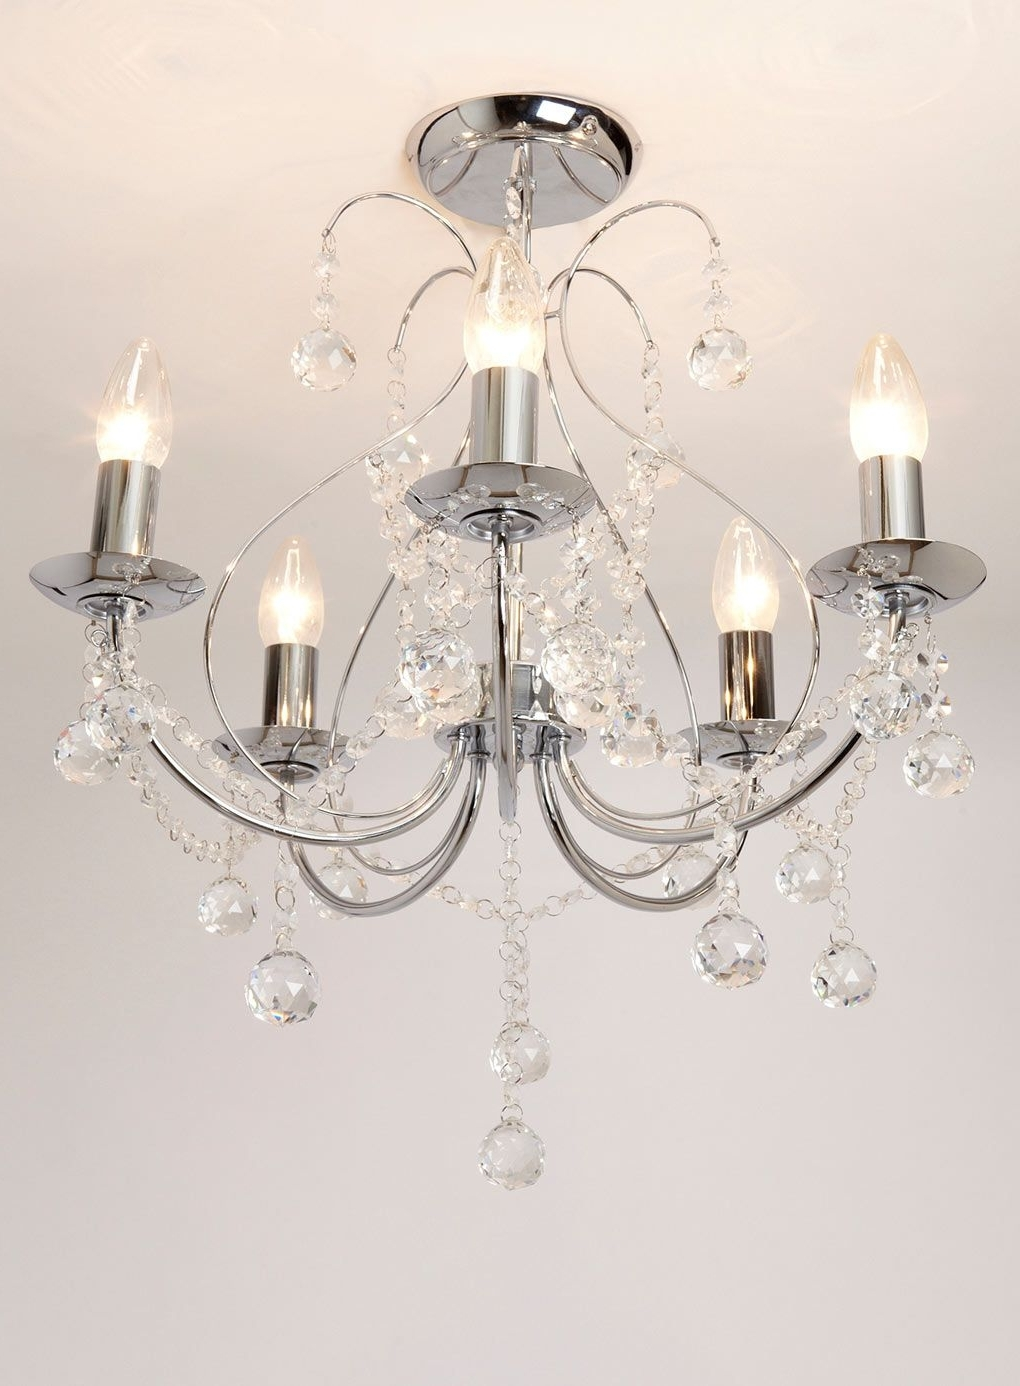 Living Room Inside Most Recent Light Fitting Chandeliers (View 14 of 15)